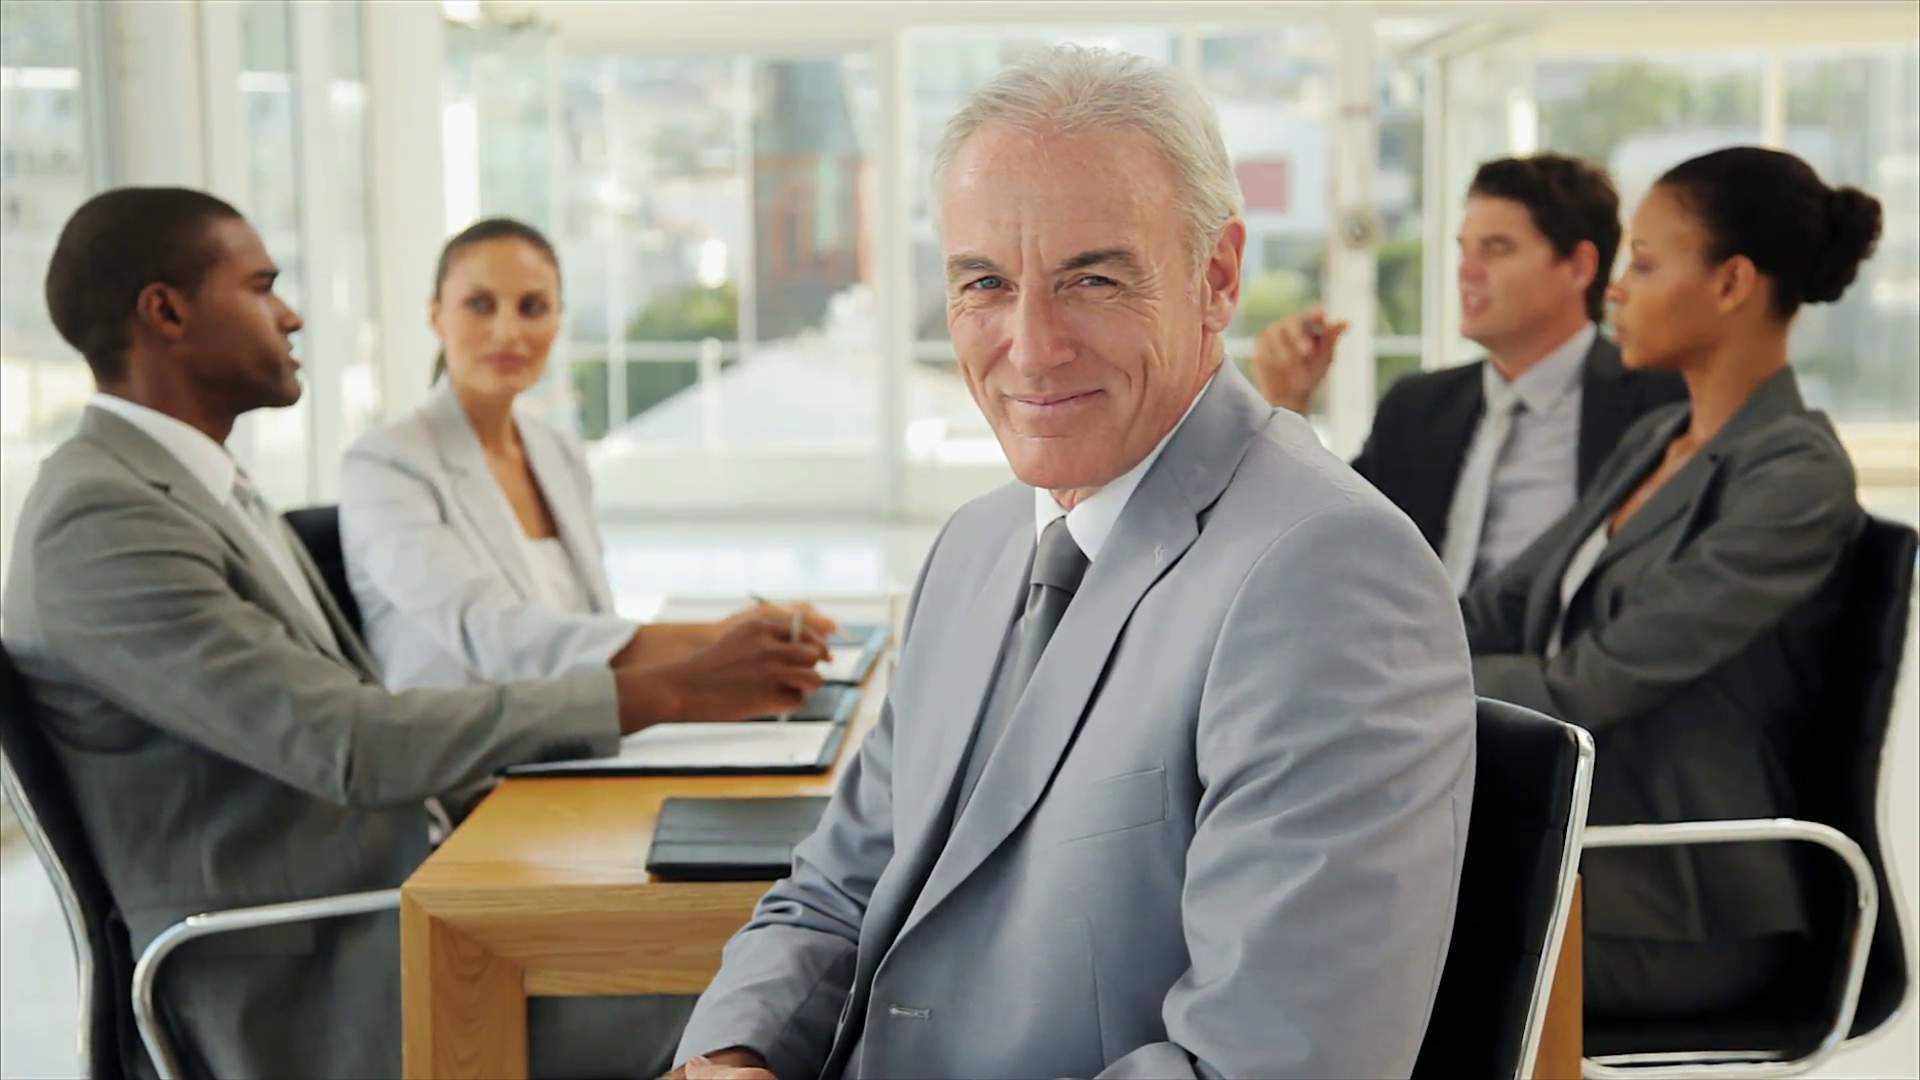 businessman-sitting-at-the-head-of-boardroom-table-in-a-business-meeting-his-business-colleagues-are-having-a-discussion-in-the-background_vmmhjt53g__F0010